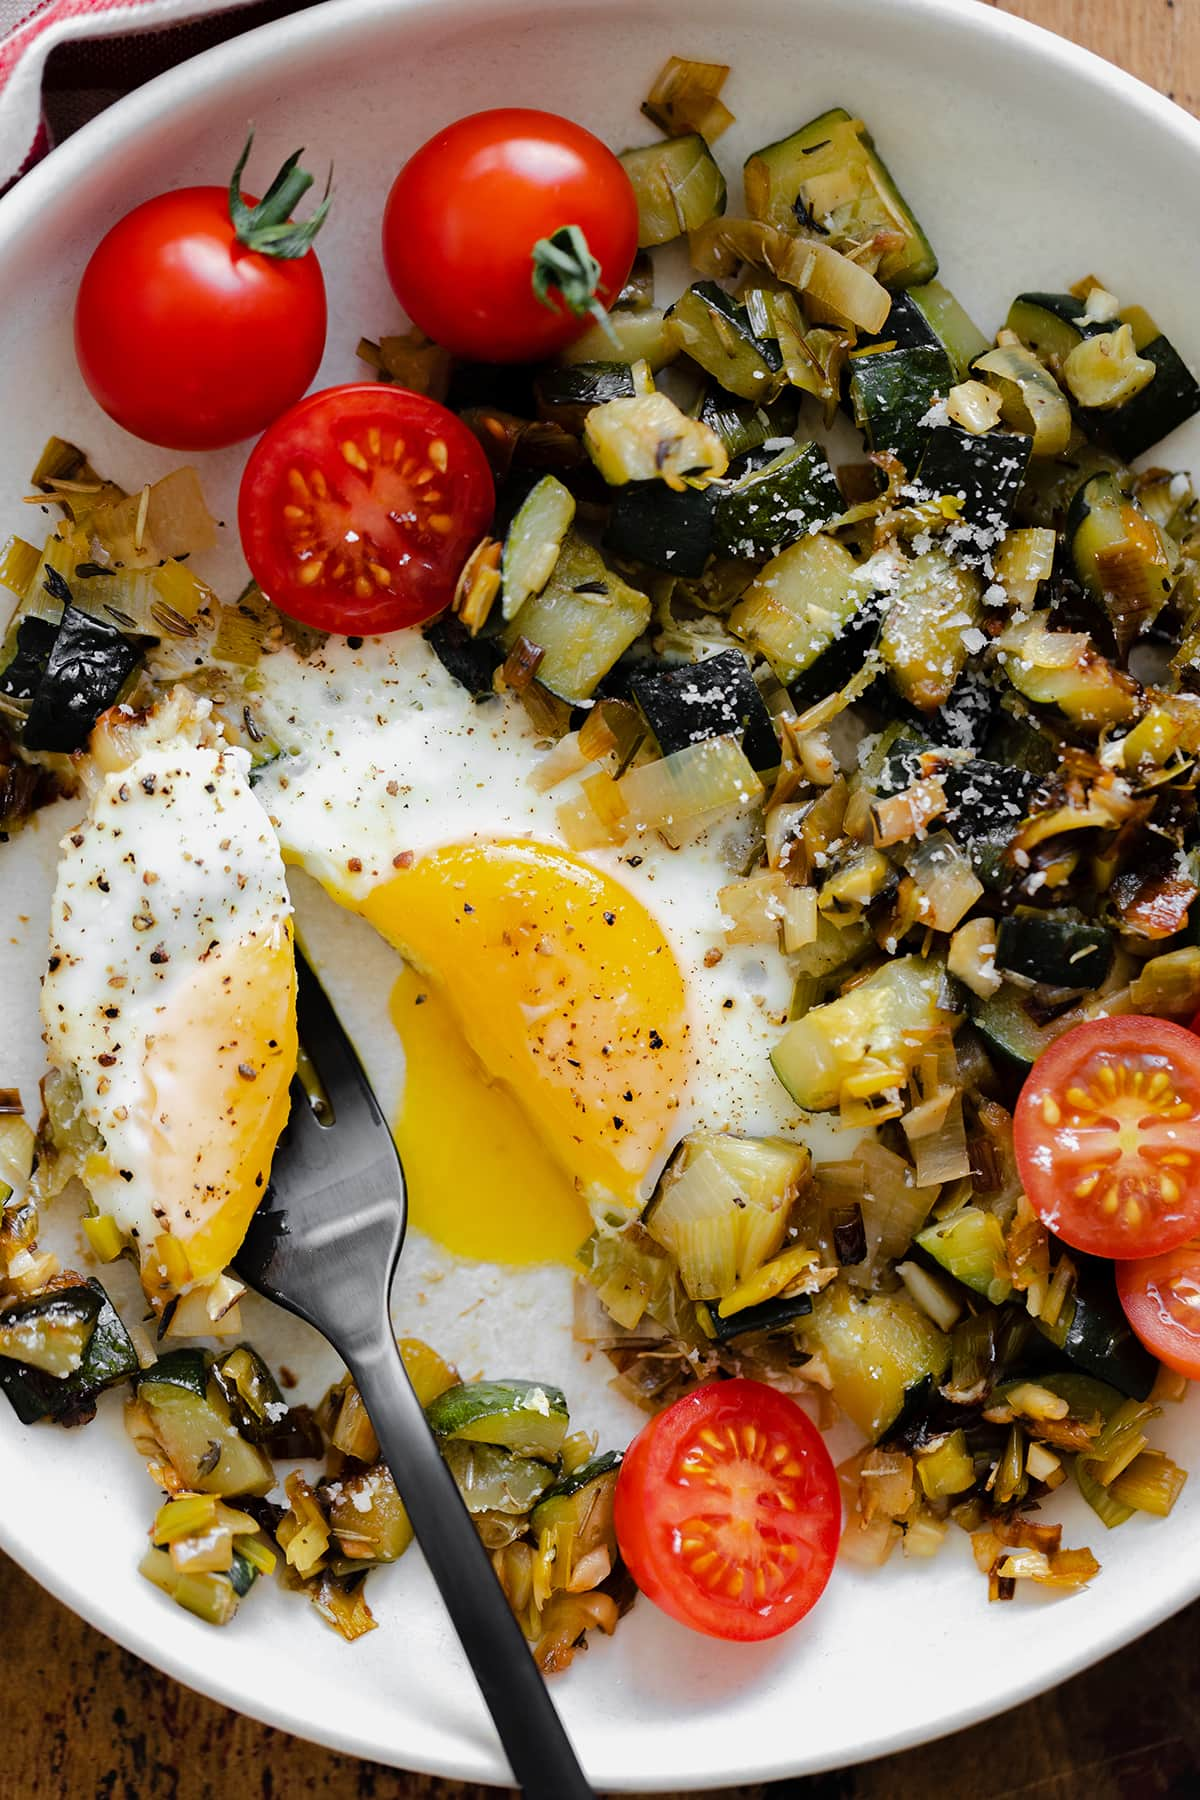 A close up shot of Leek and Zucchini Egg Skillet